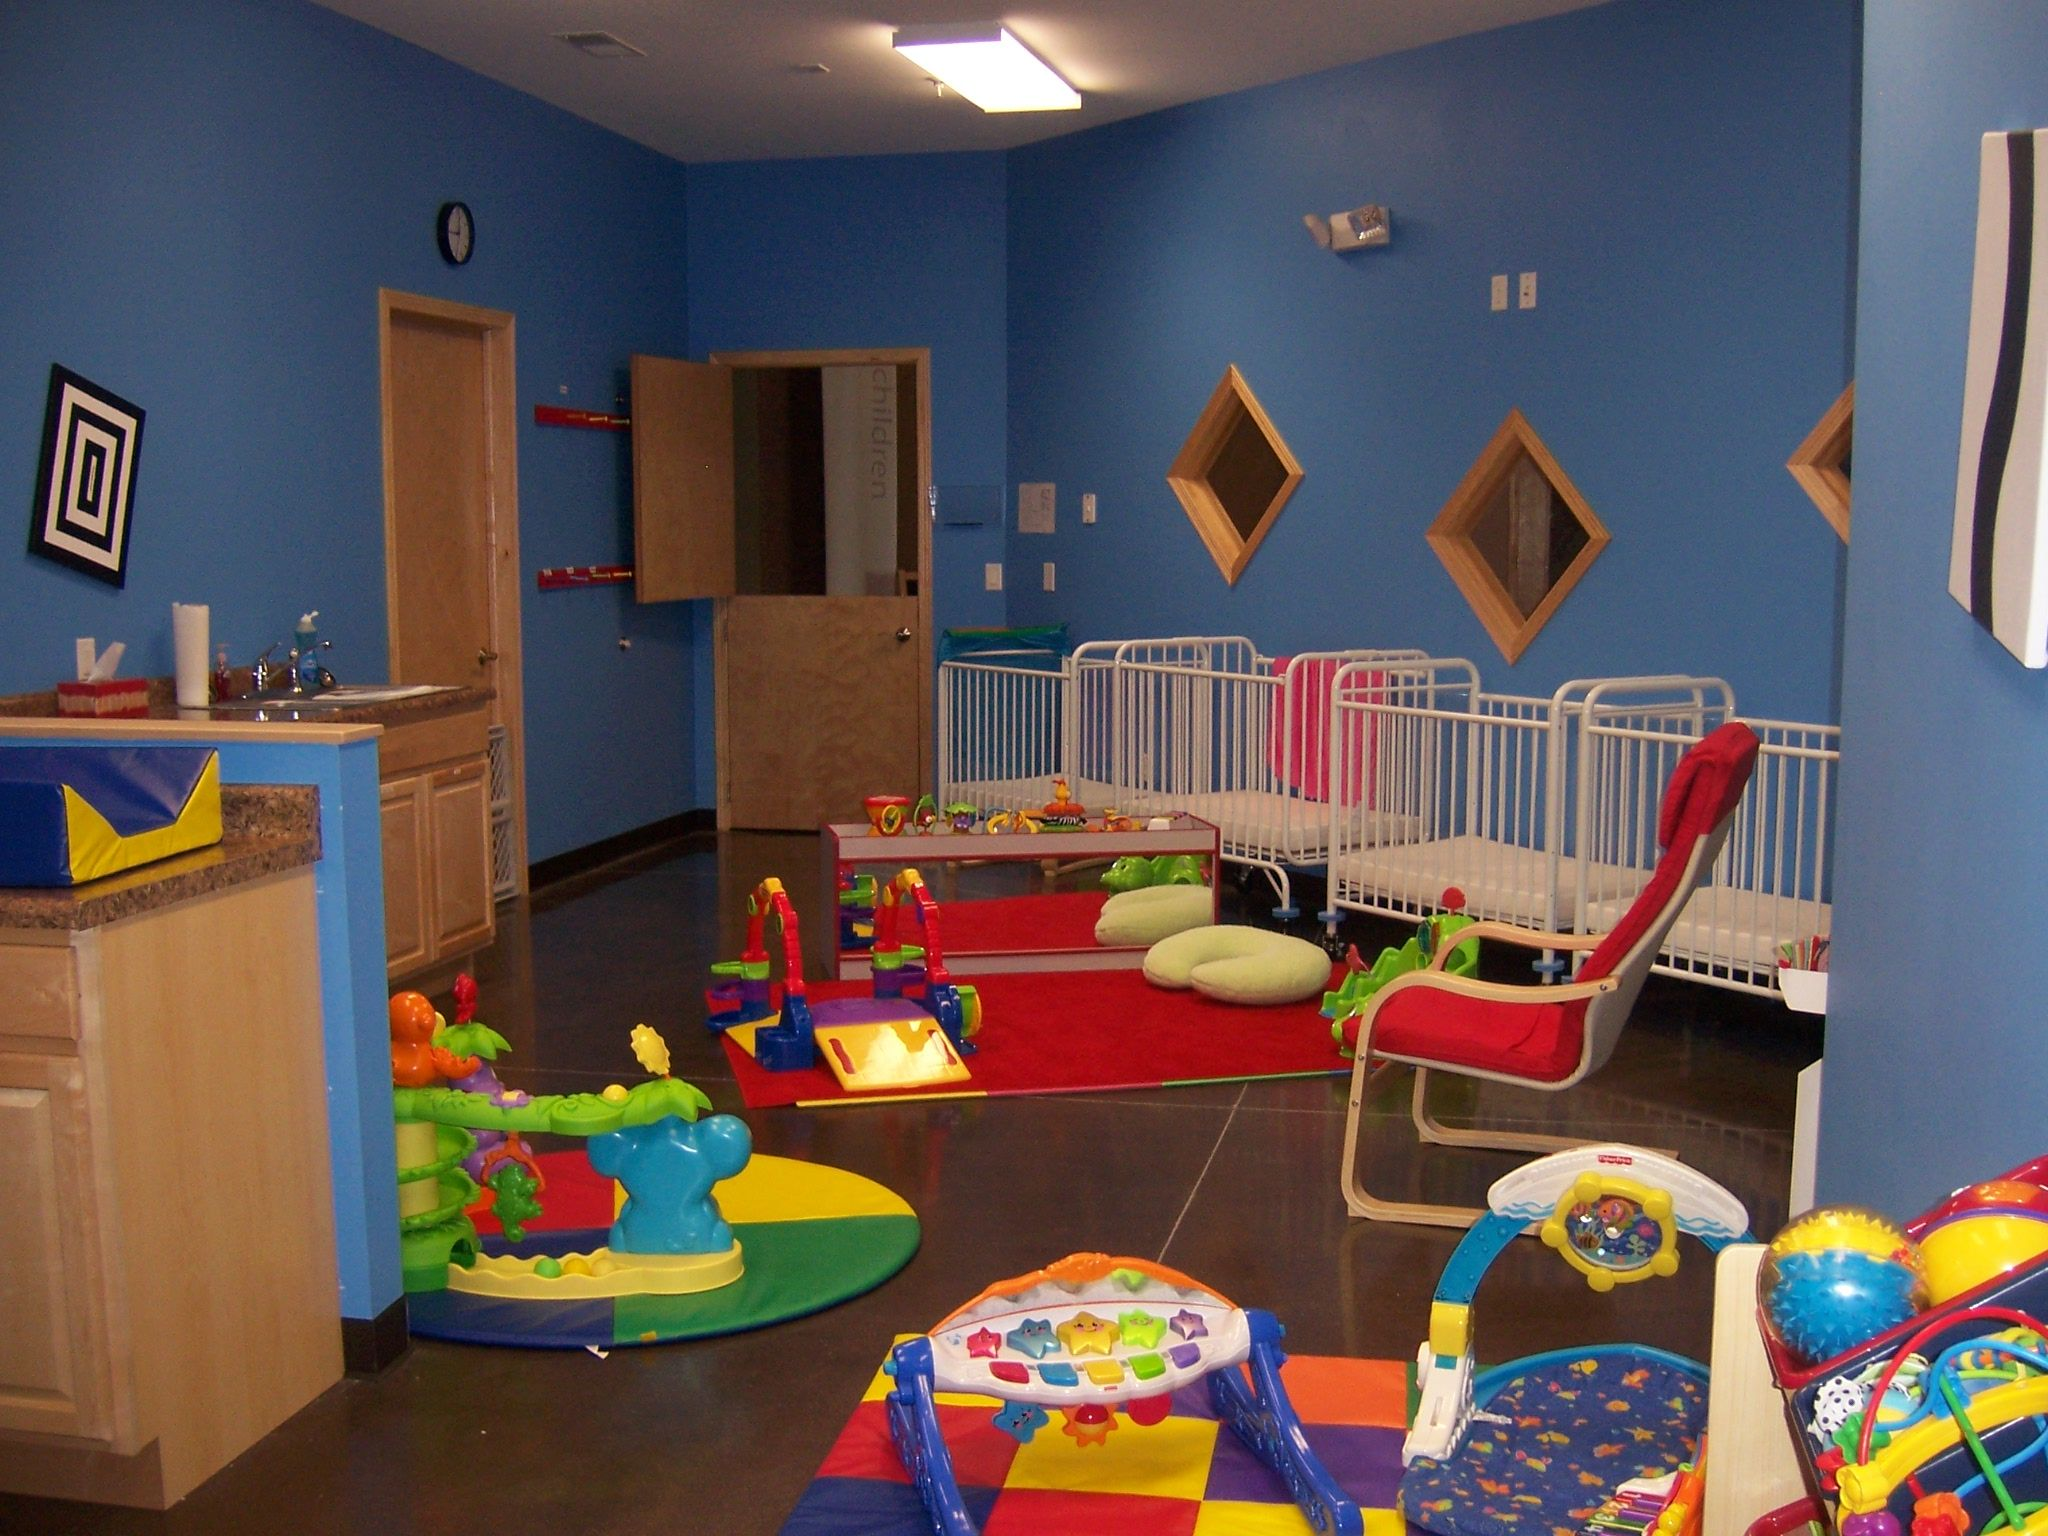 Image Result For Child Care Home Centers Pics Childcare Center